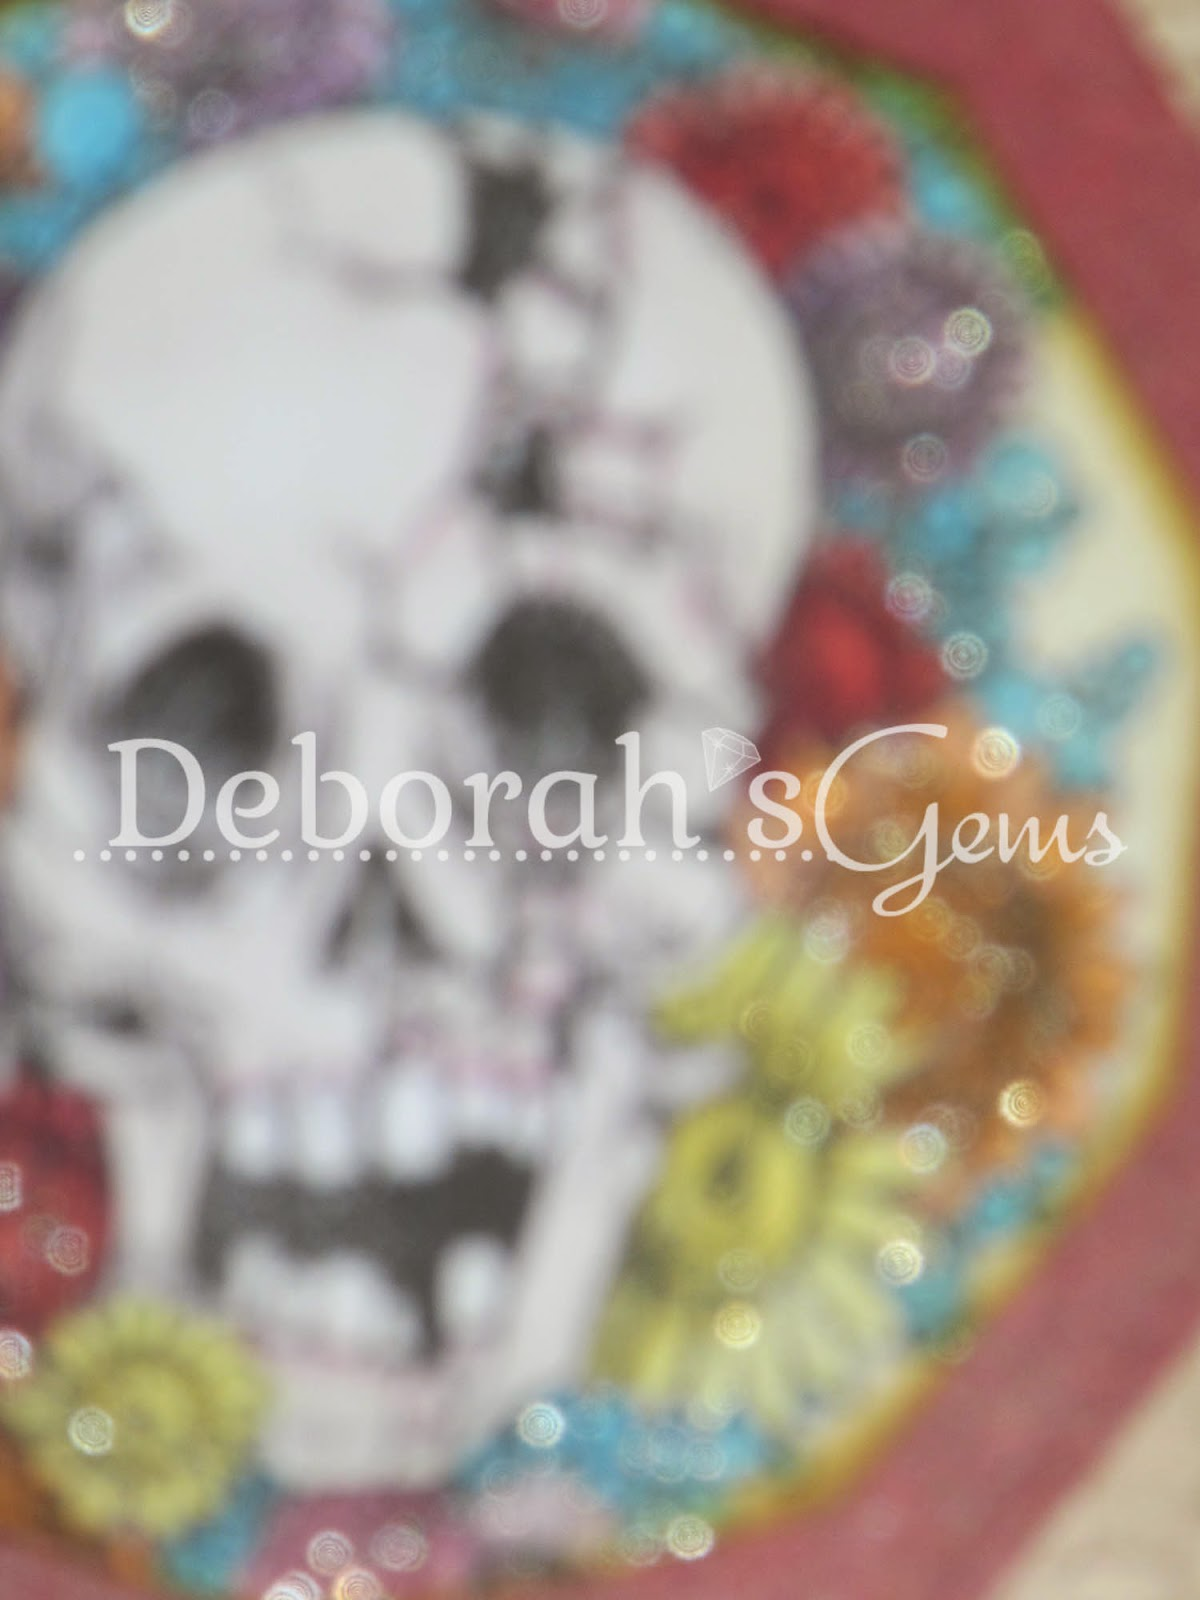 Today detail - photo by Deborah Frings - Deborah's Gems